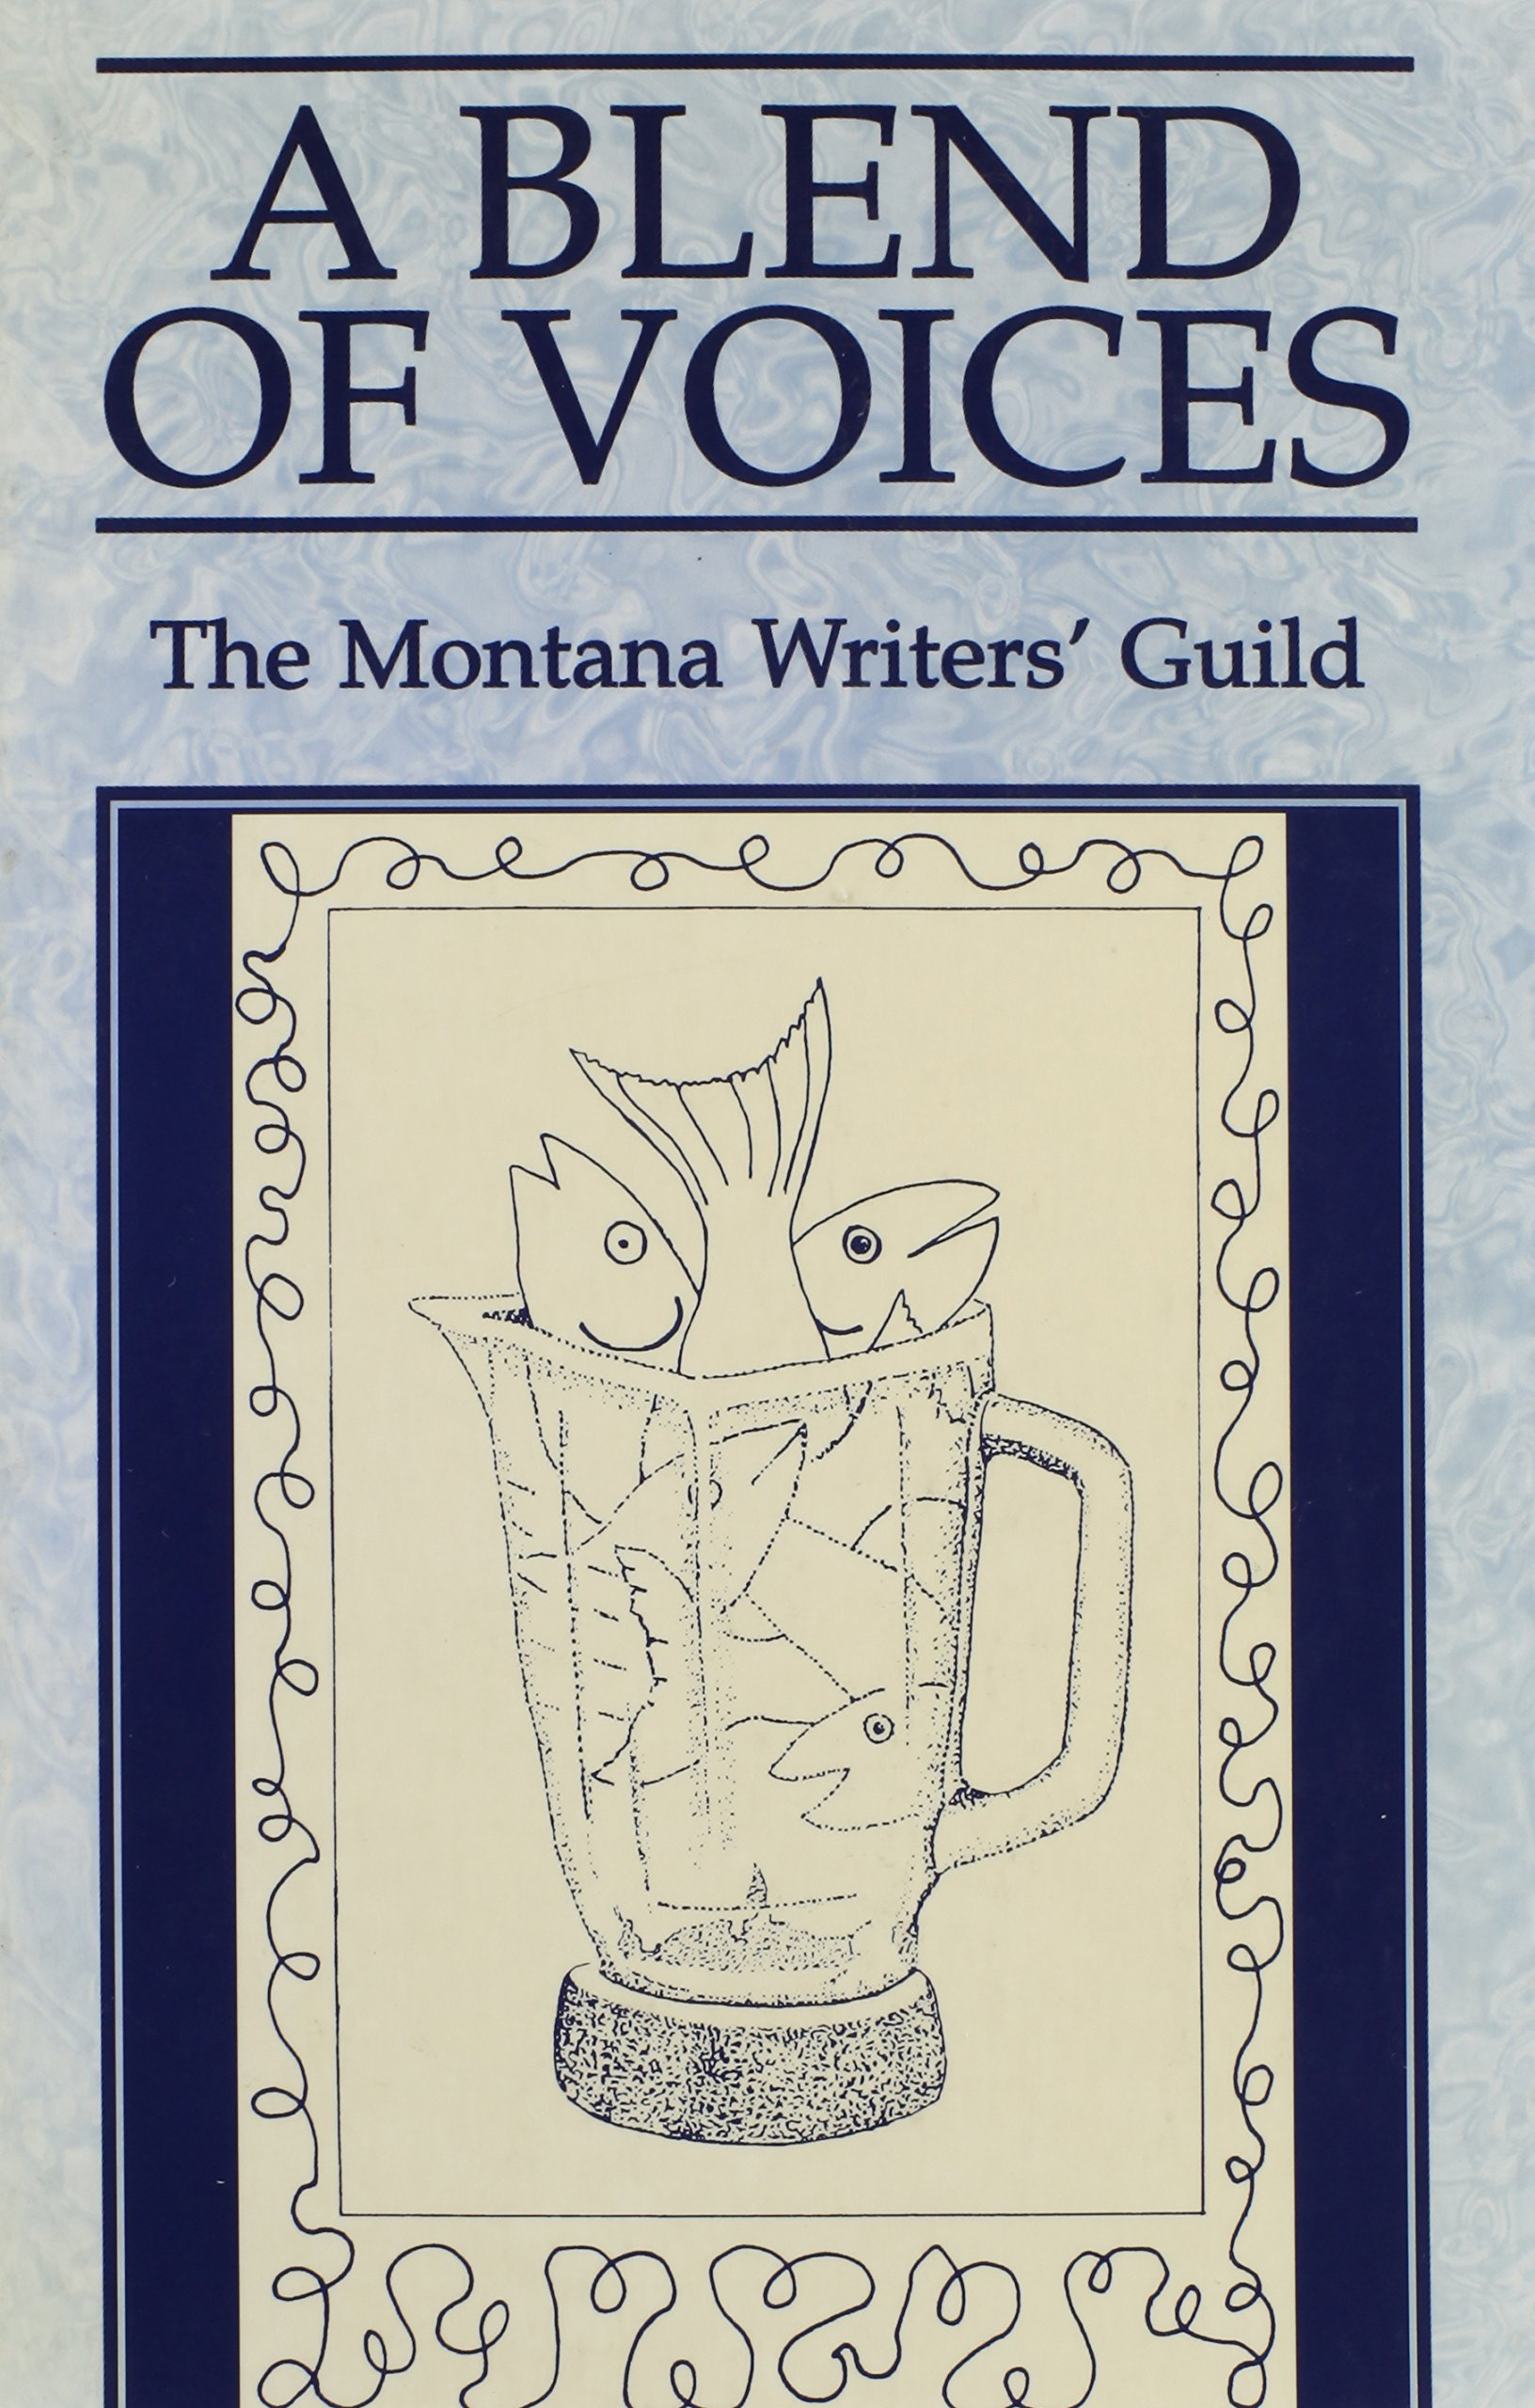 A Blend of Voices written by Anita Coryell